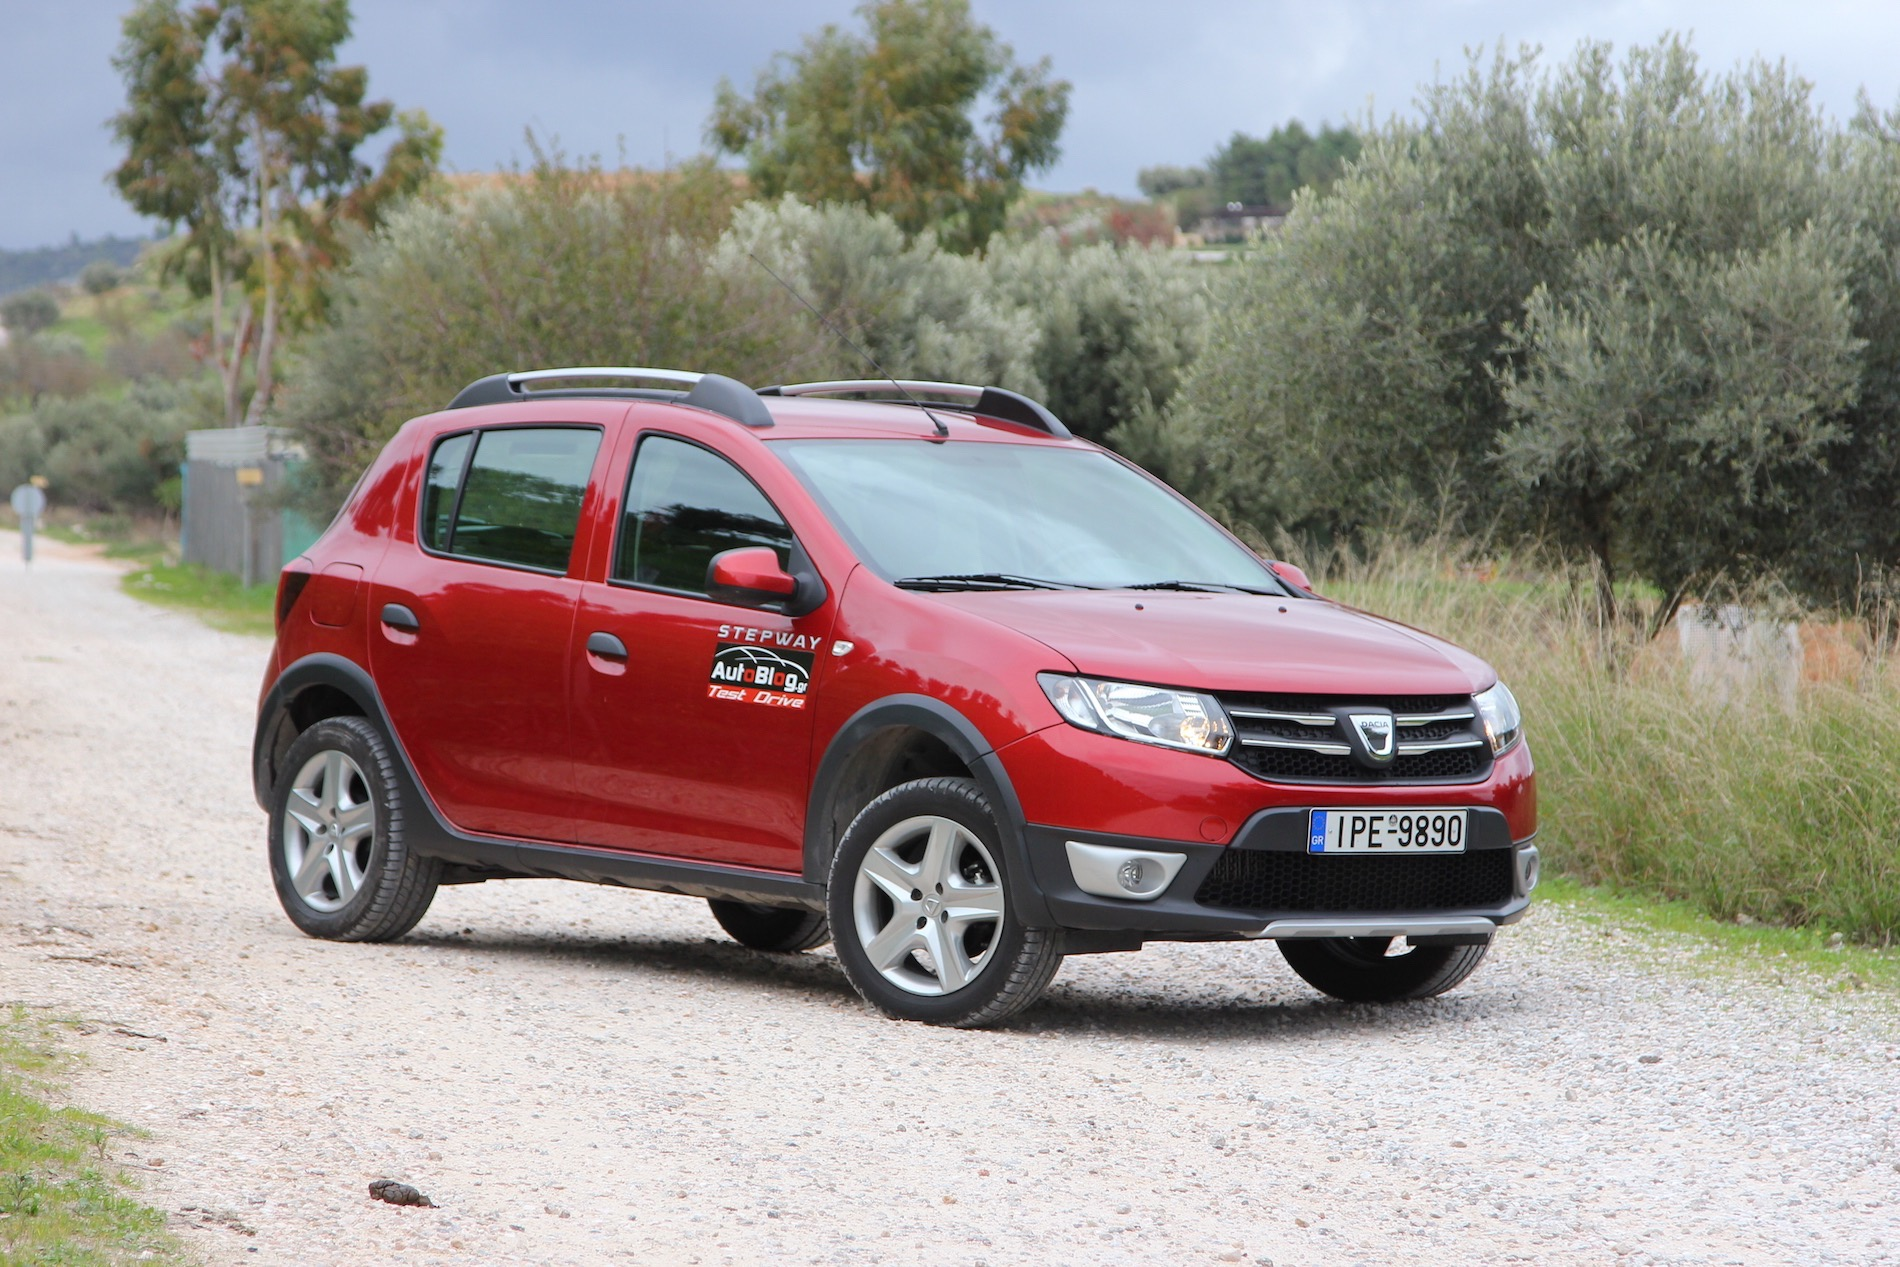 test drive dacia sandero stepway 1 5 dci 90 8. Black Bedroom Furniture Sets. Home Design Ideas